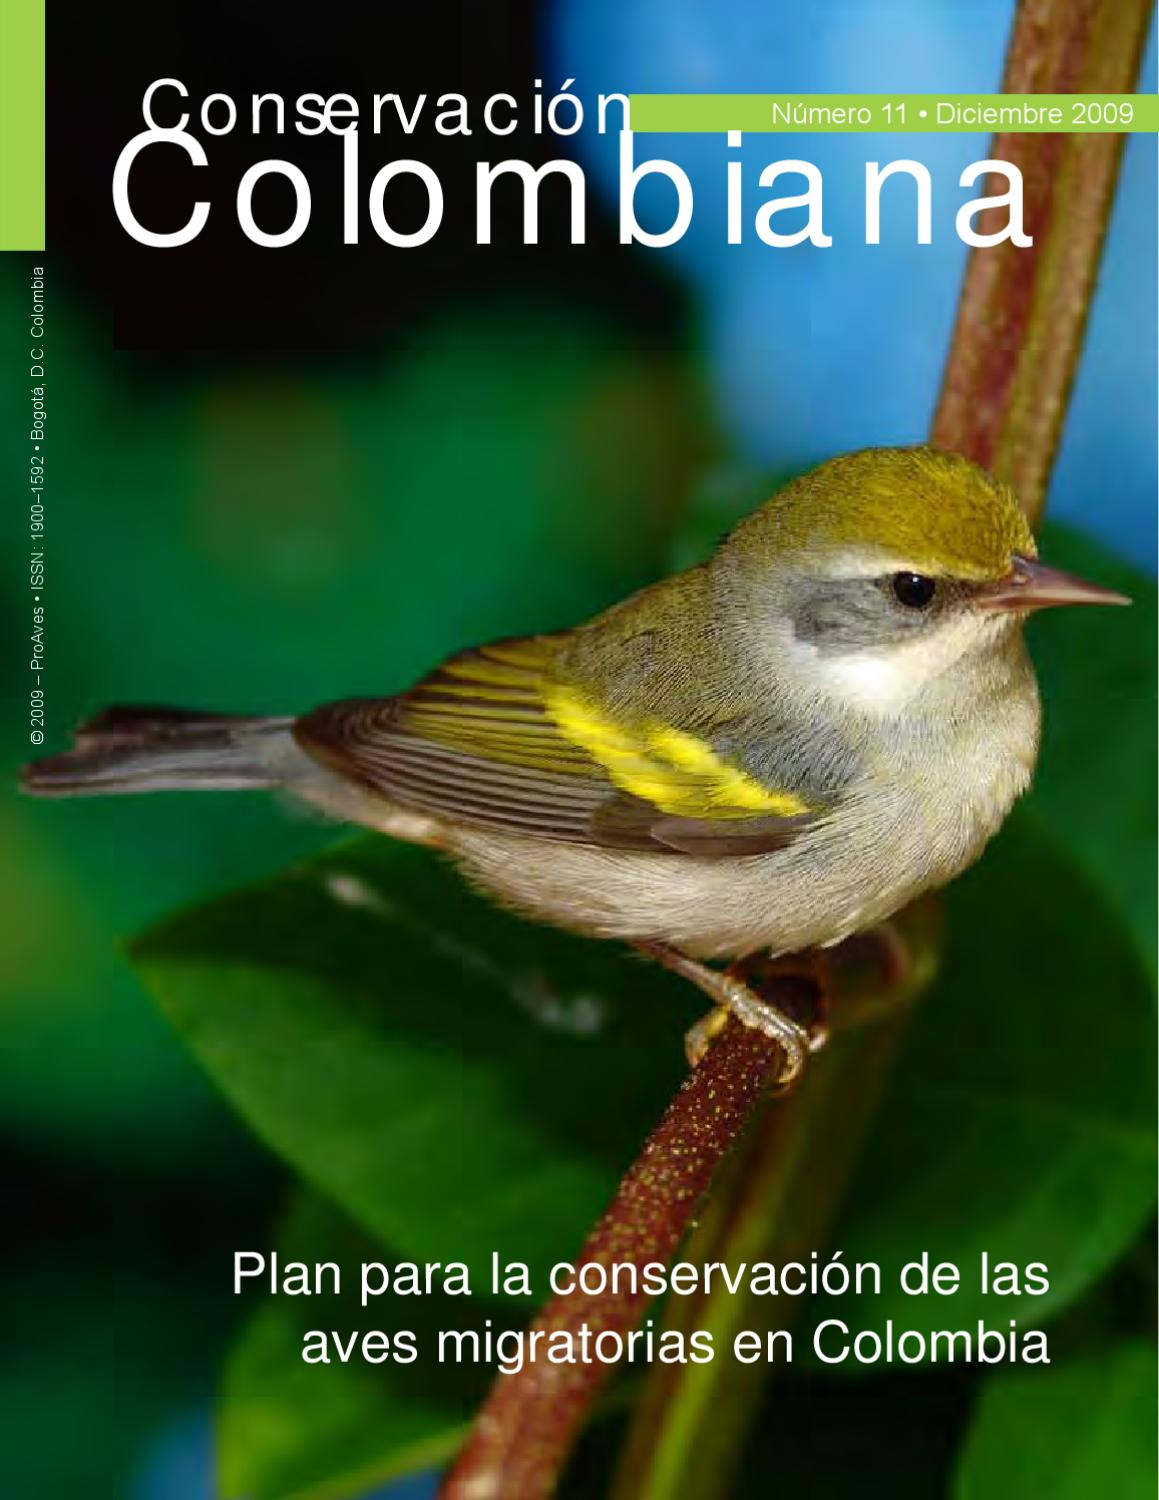 Plan Conservación Aves migratorias Colombia by Andres Paez - issuu